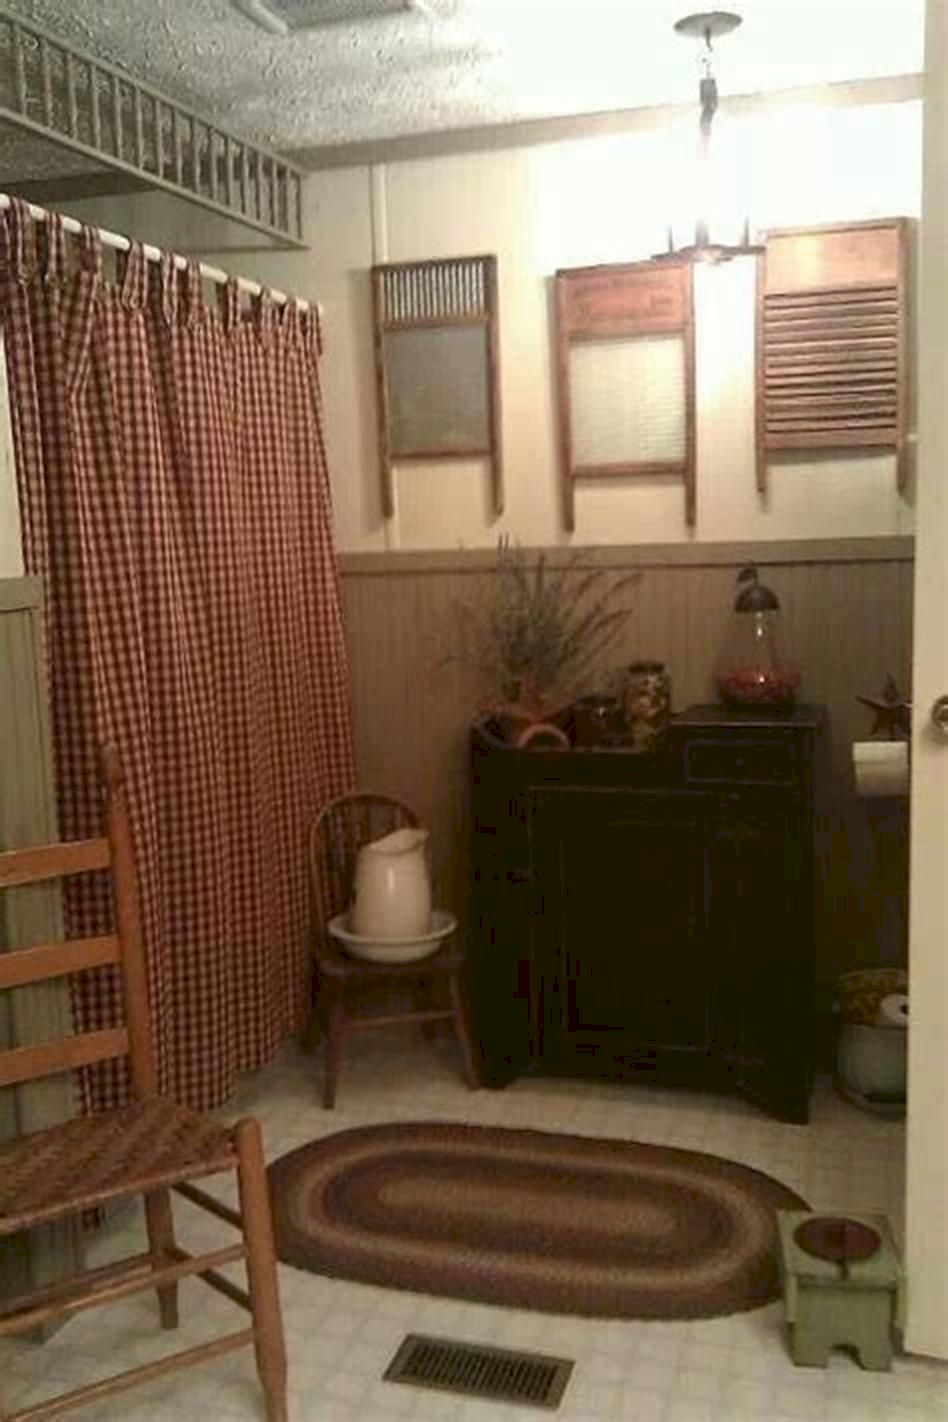 Amazing country bathrooms ideas you can imitate 25